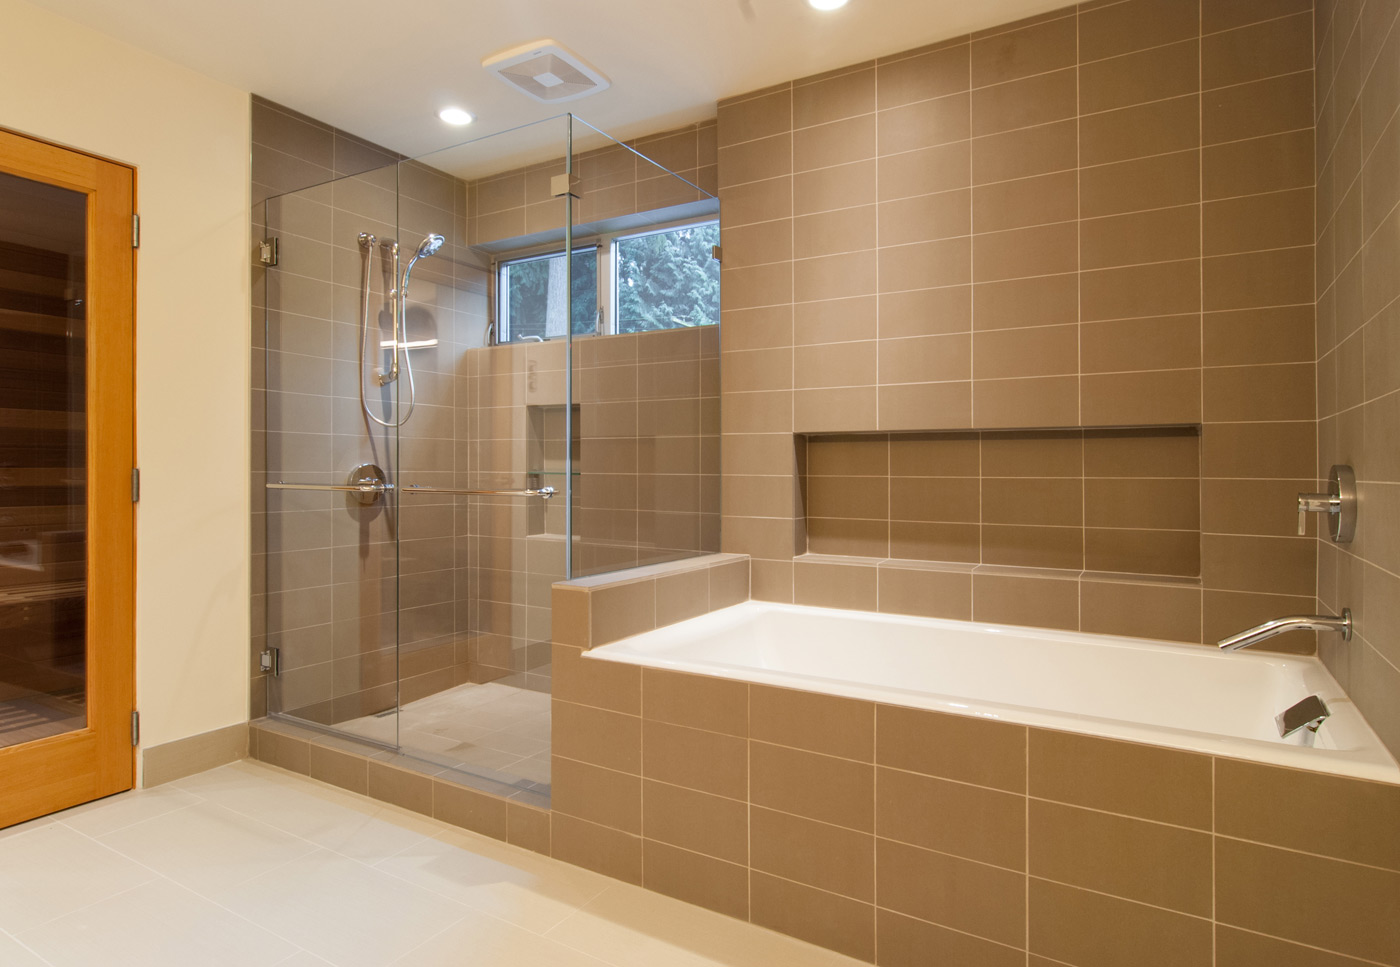 Bathroom Tiles Horizontal rectangular bathroom tiles horizontal or vertical how the main